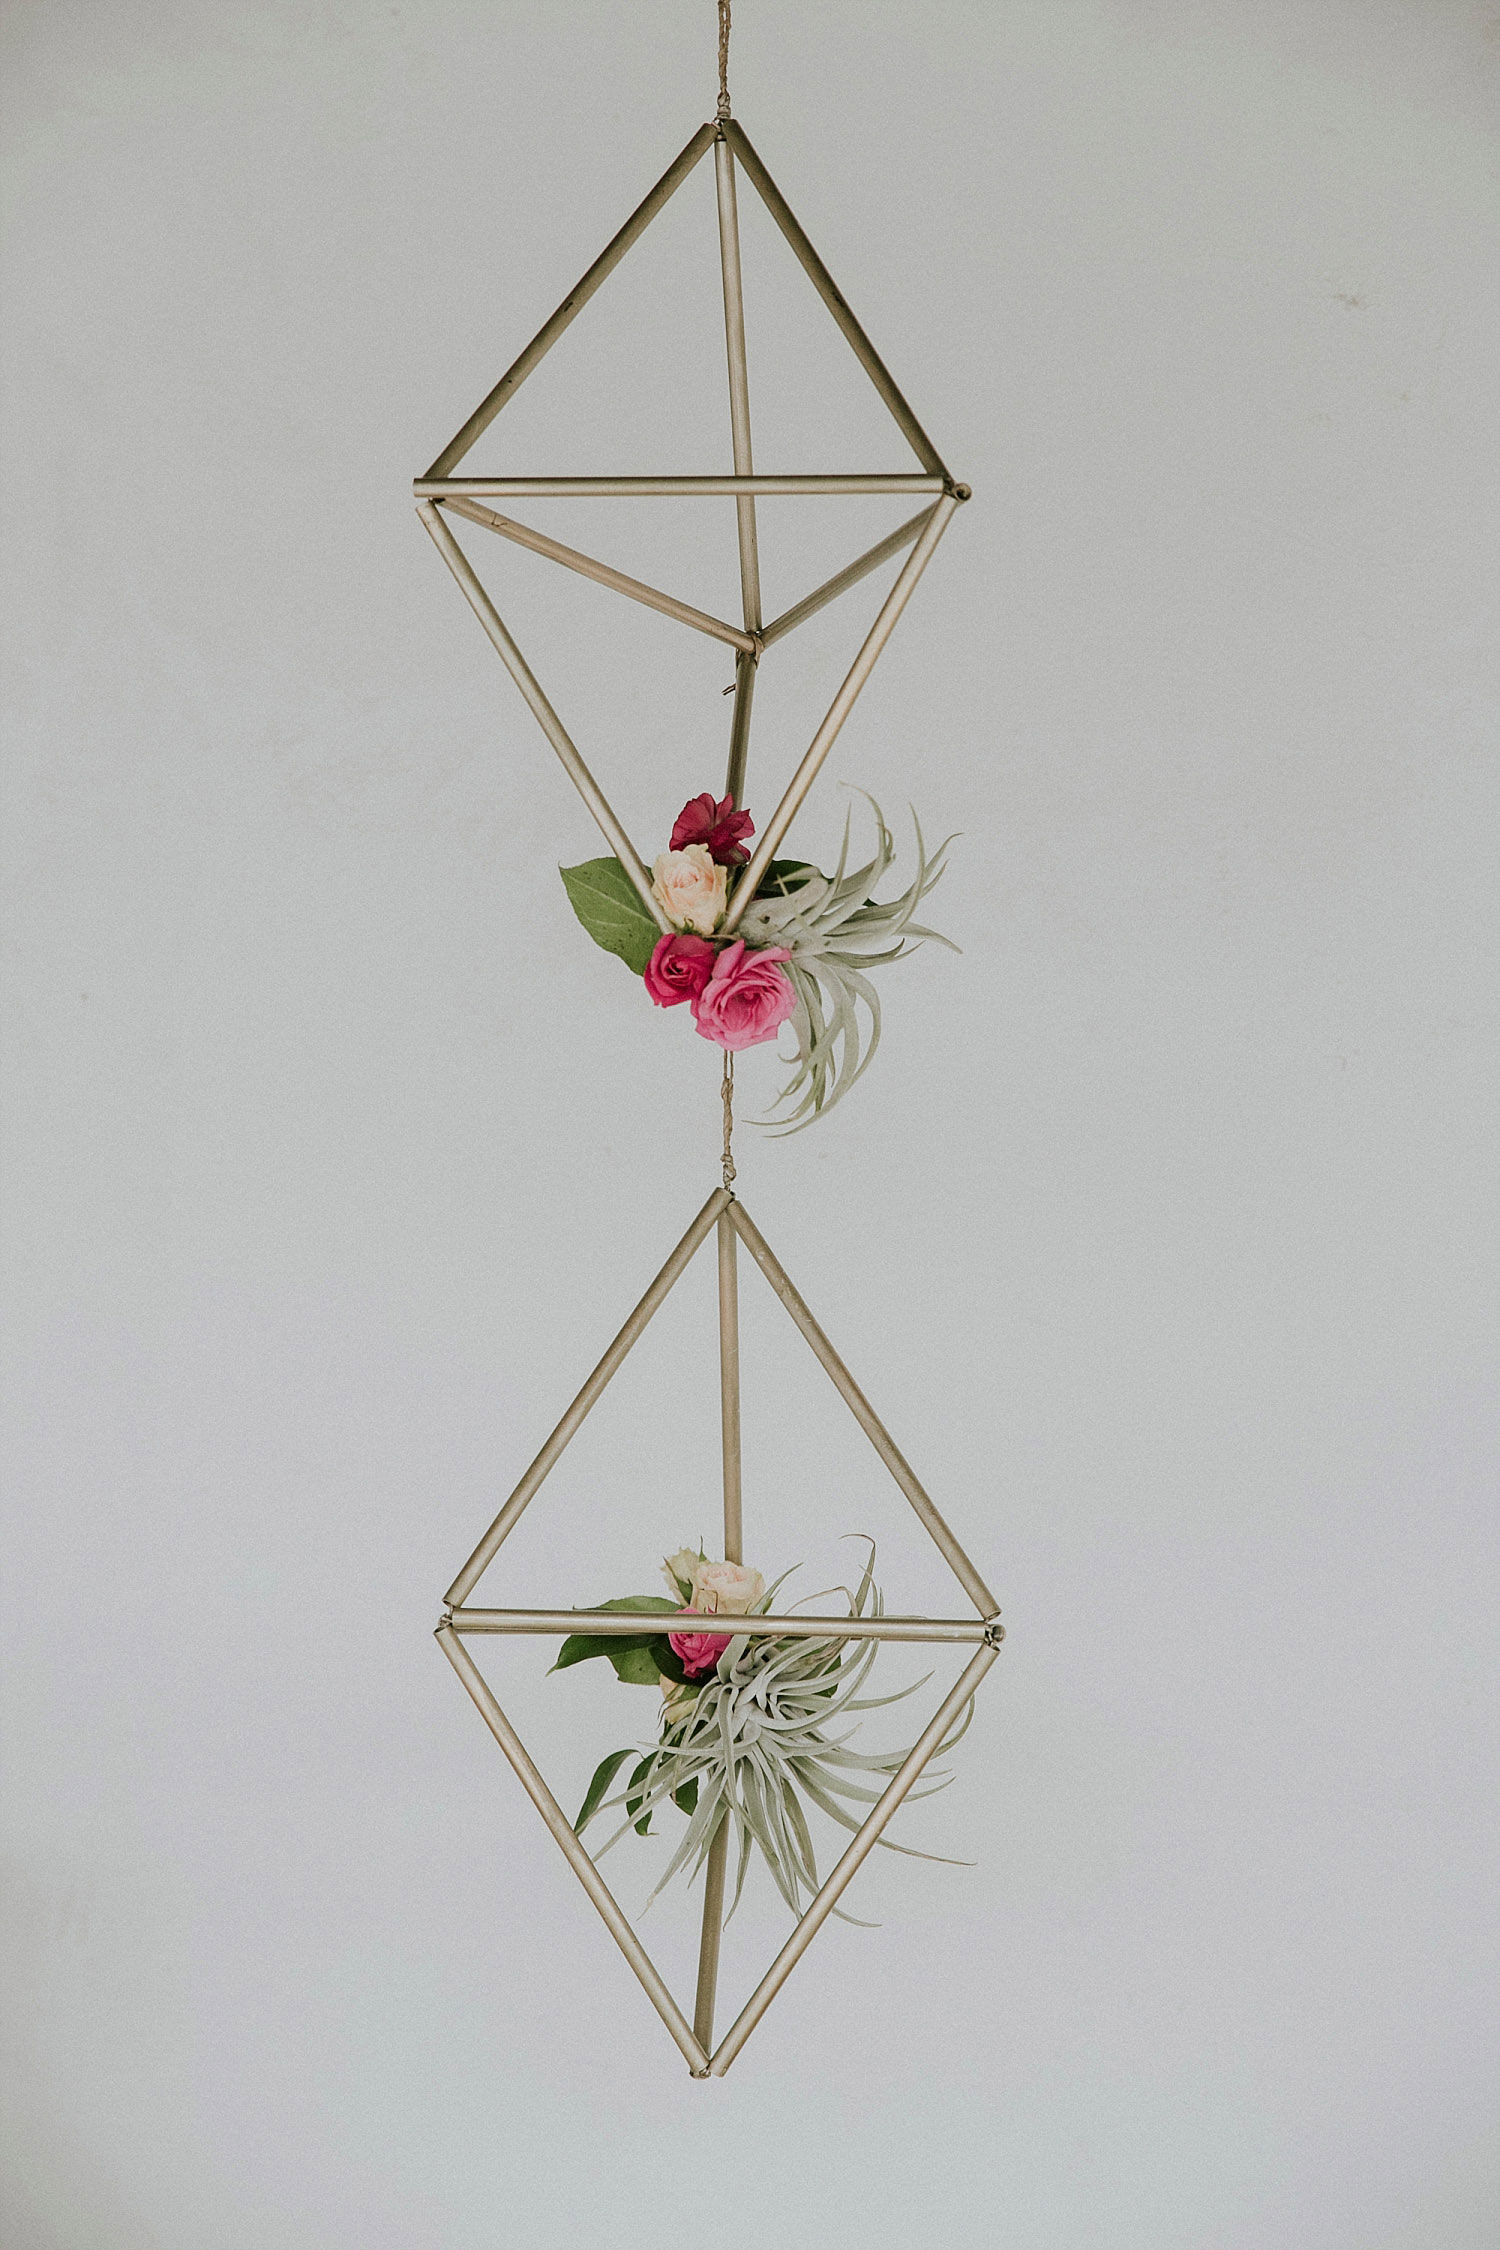 hanging geometric shapes with flowers